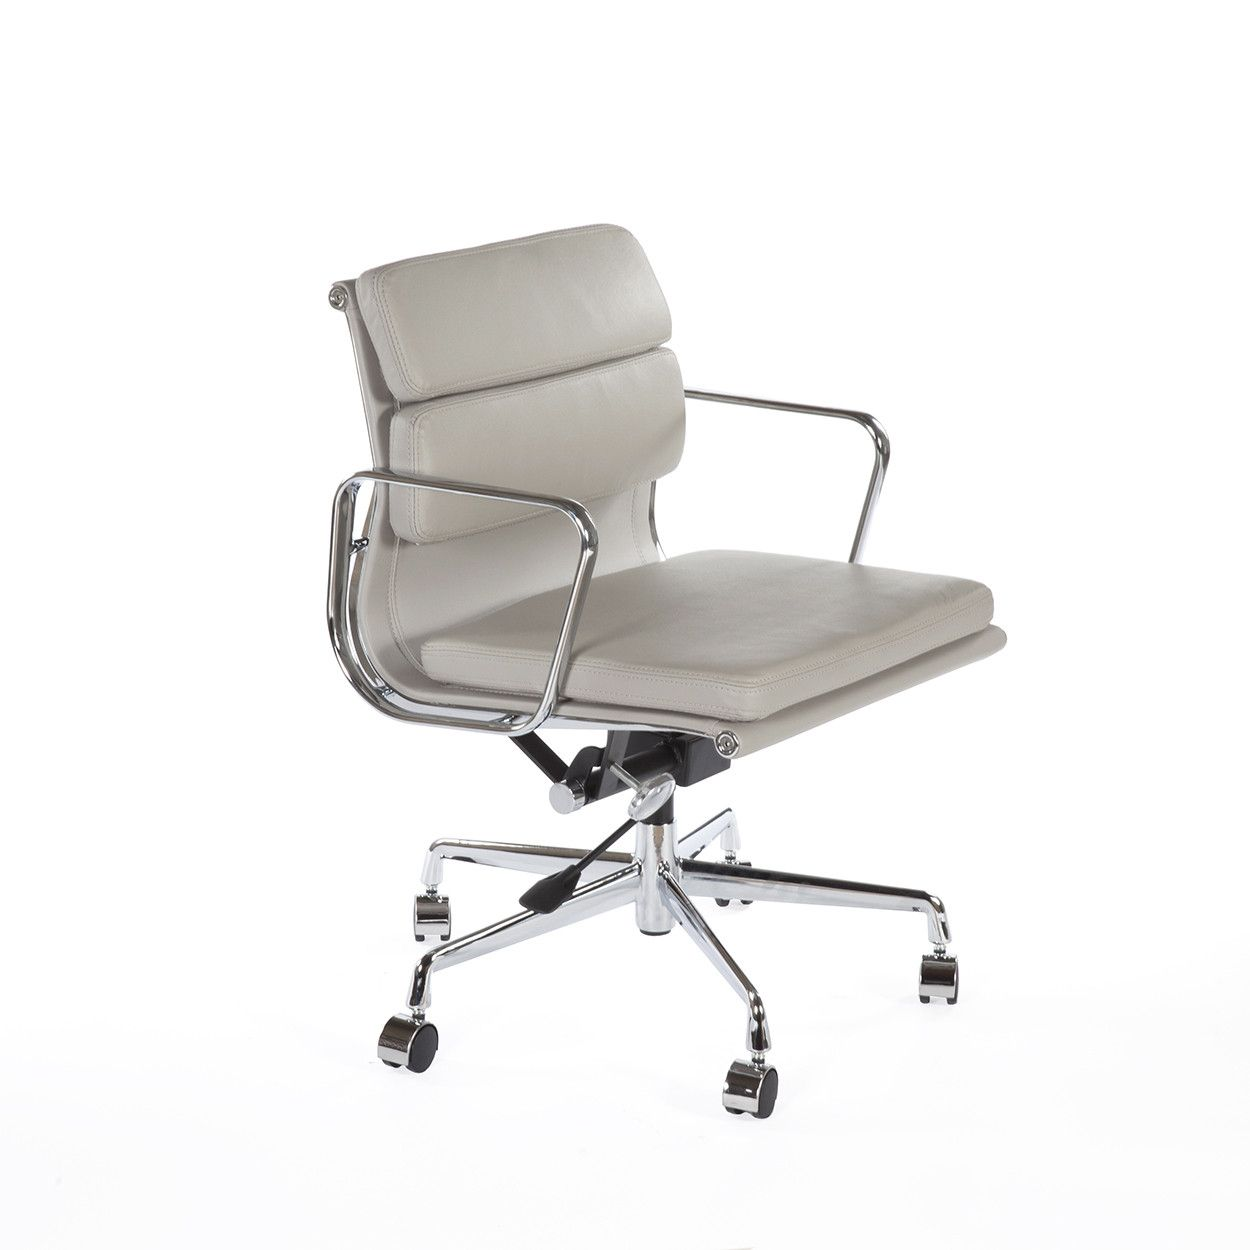 modern grey leather office chair step stool mid century polstret low back padded aluminum